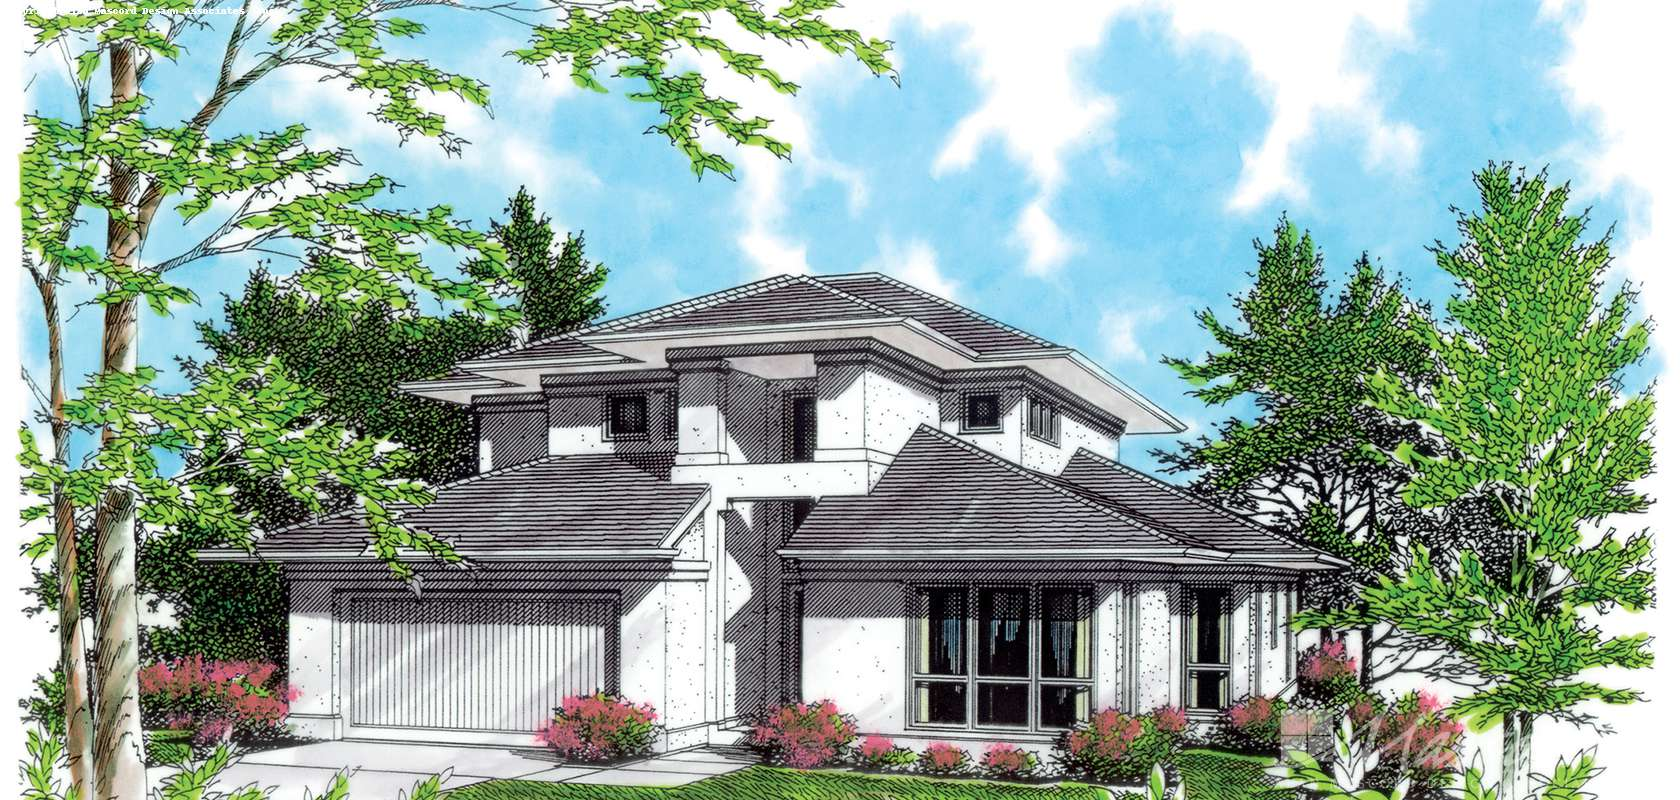 Mascord House Plan 2284C: The Remsen